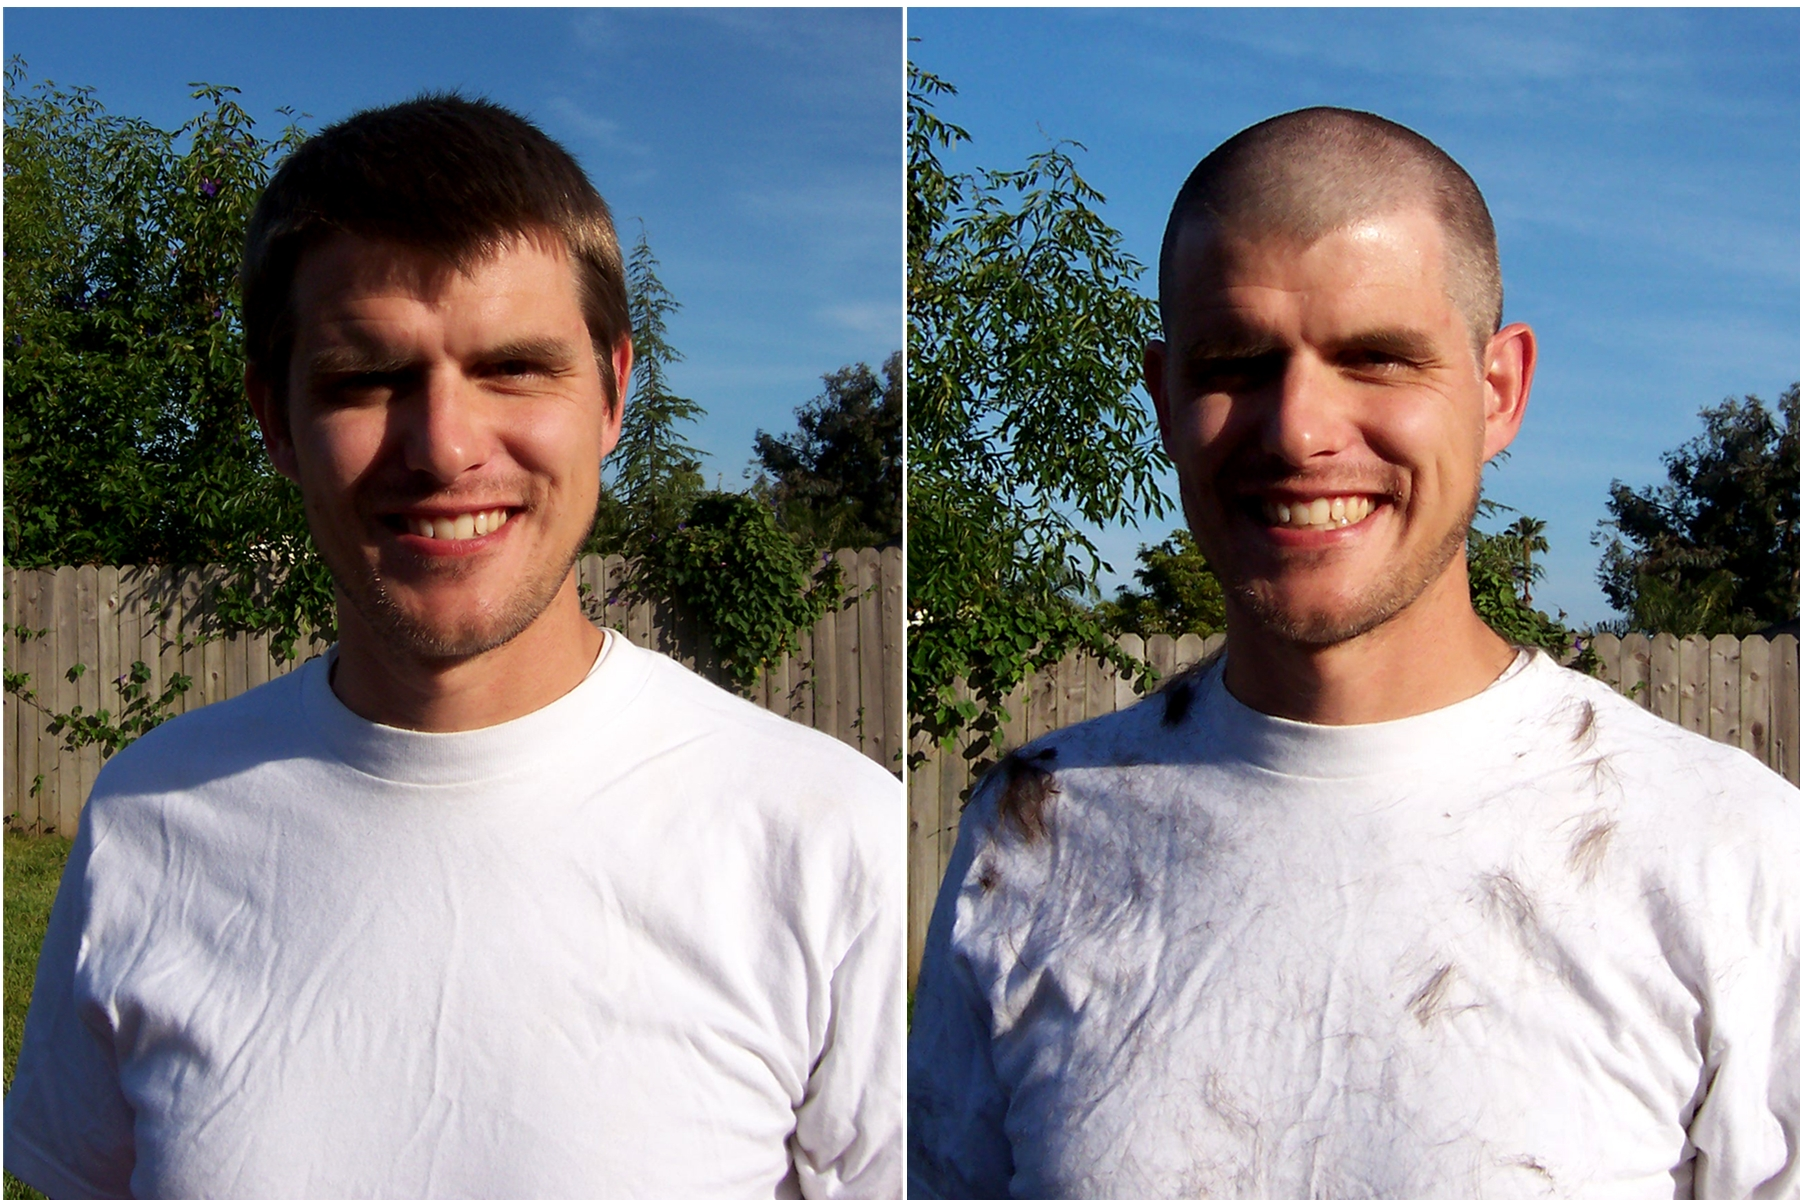 balding buzz cut before and after short hairstyle 2013